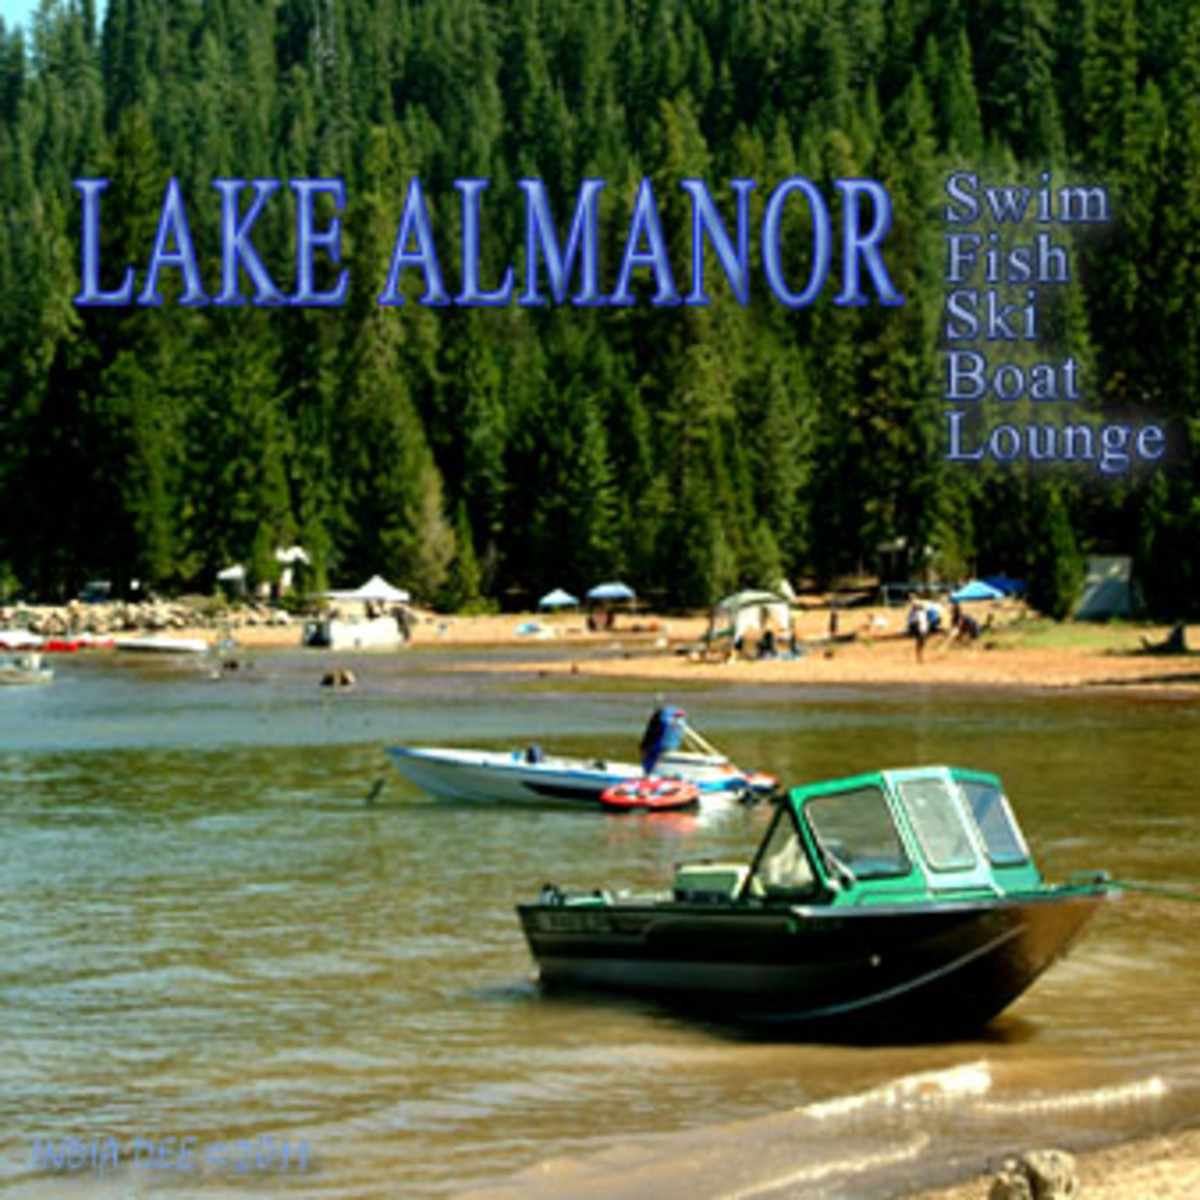 Lake almanor is california 39 s best shoreline vacation for Lake almanor fishing report